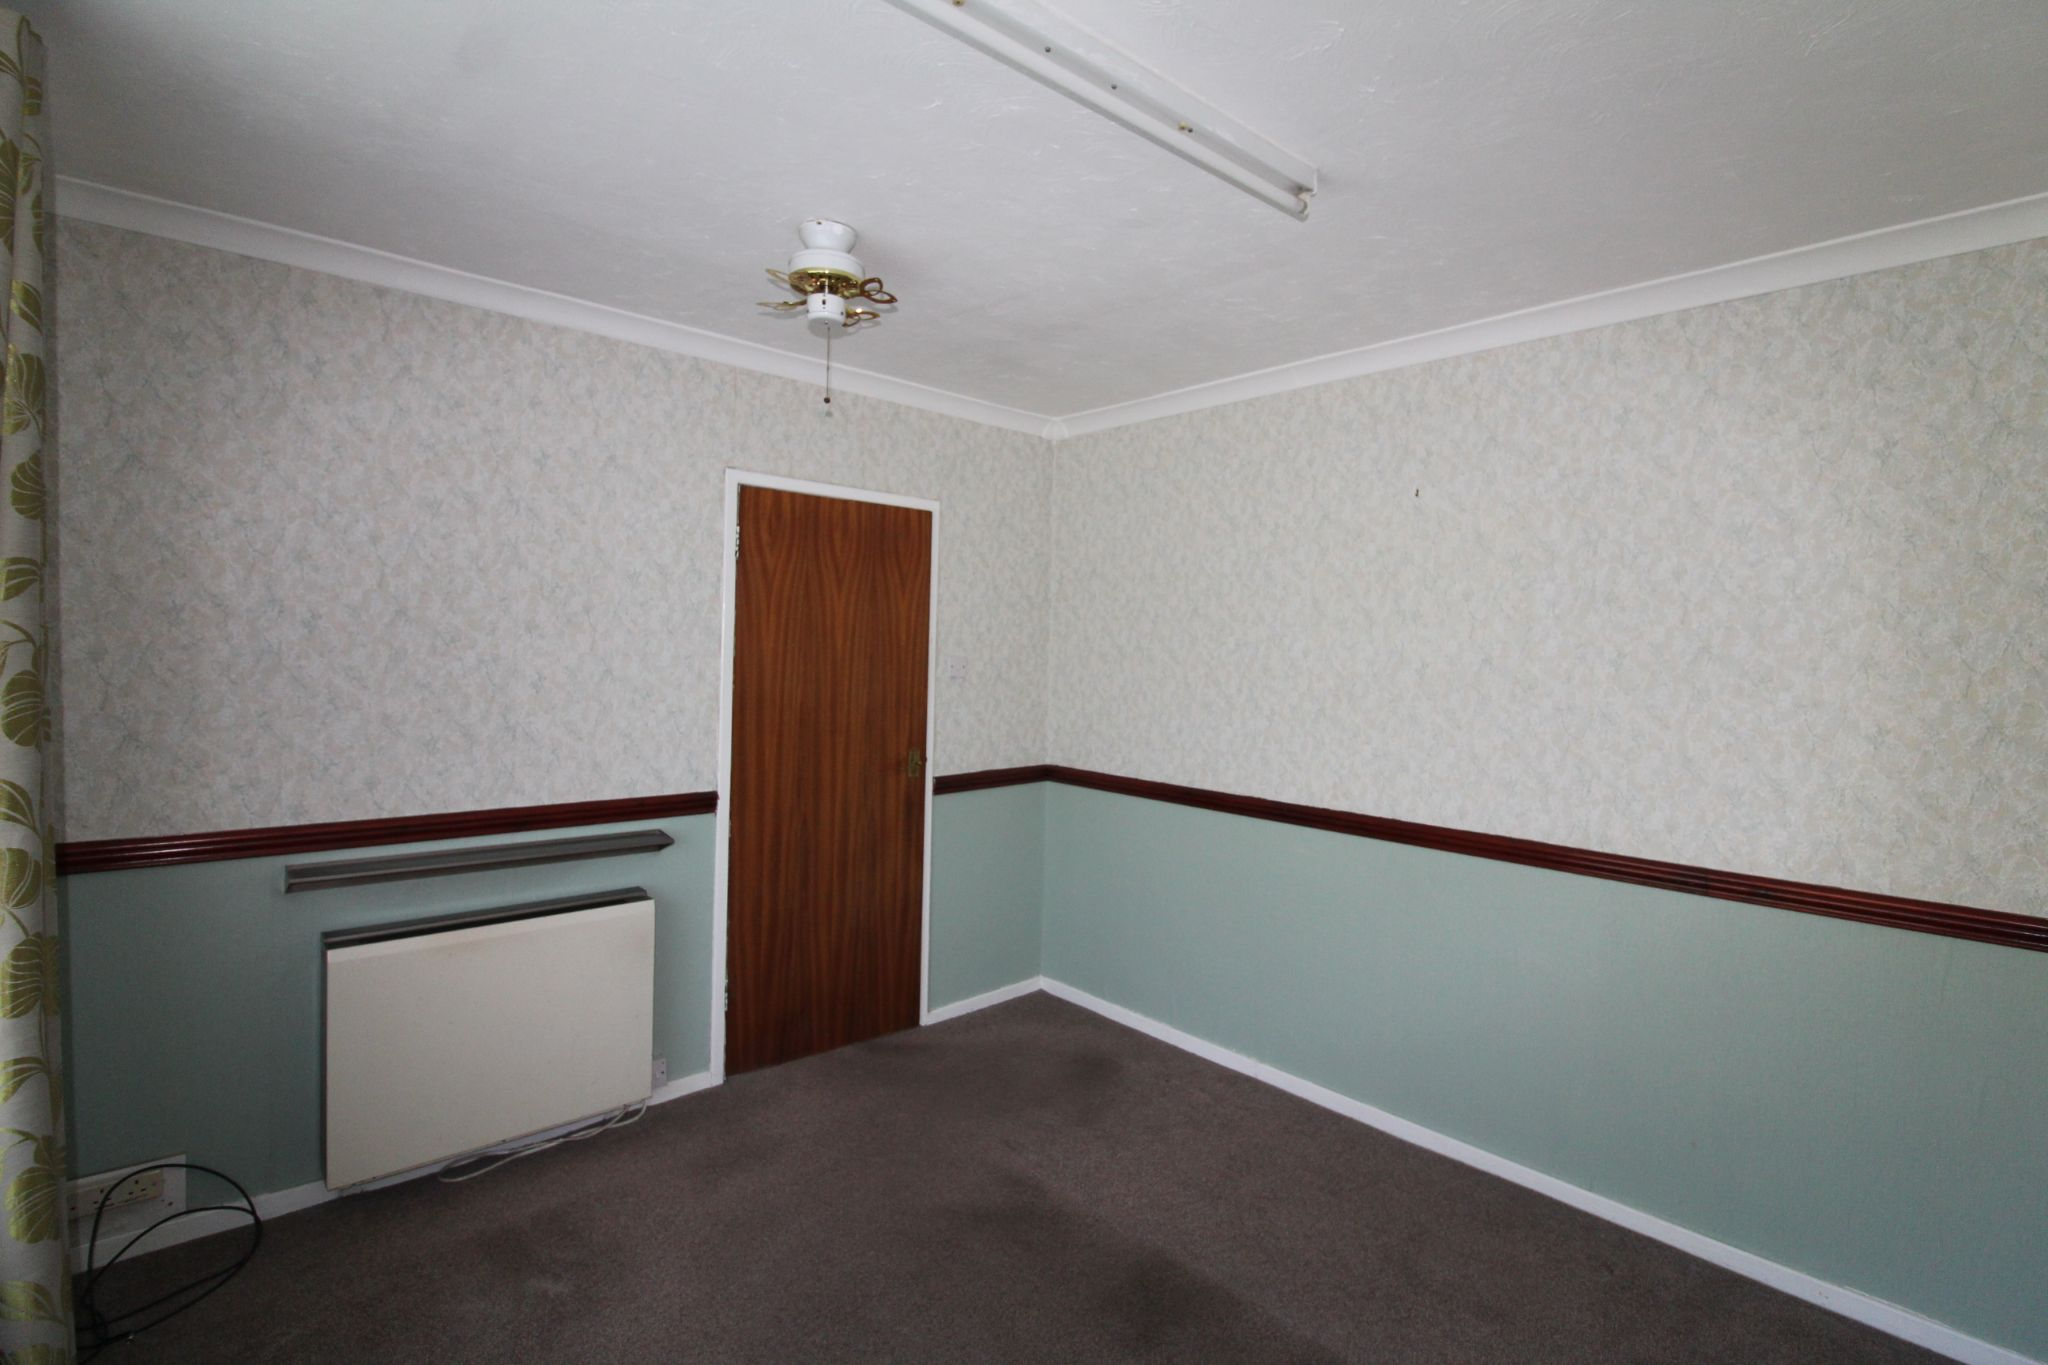 3 Bedroom End Terraced House For Sale - Photograph 23